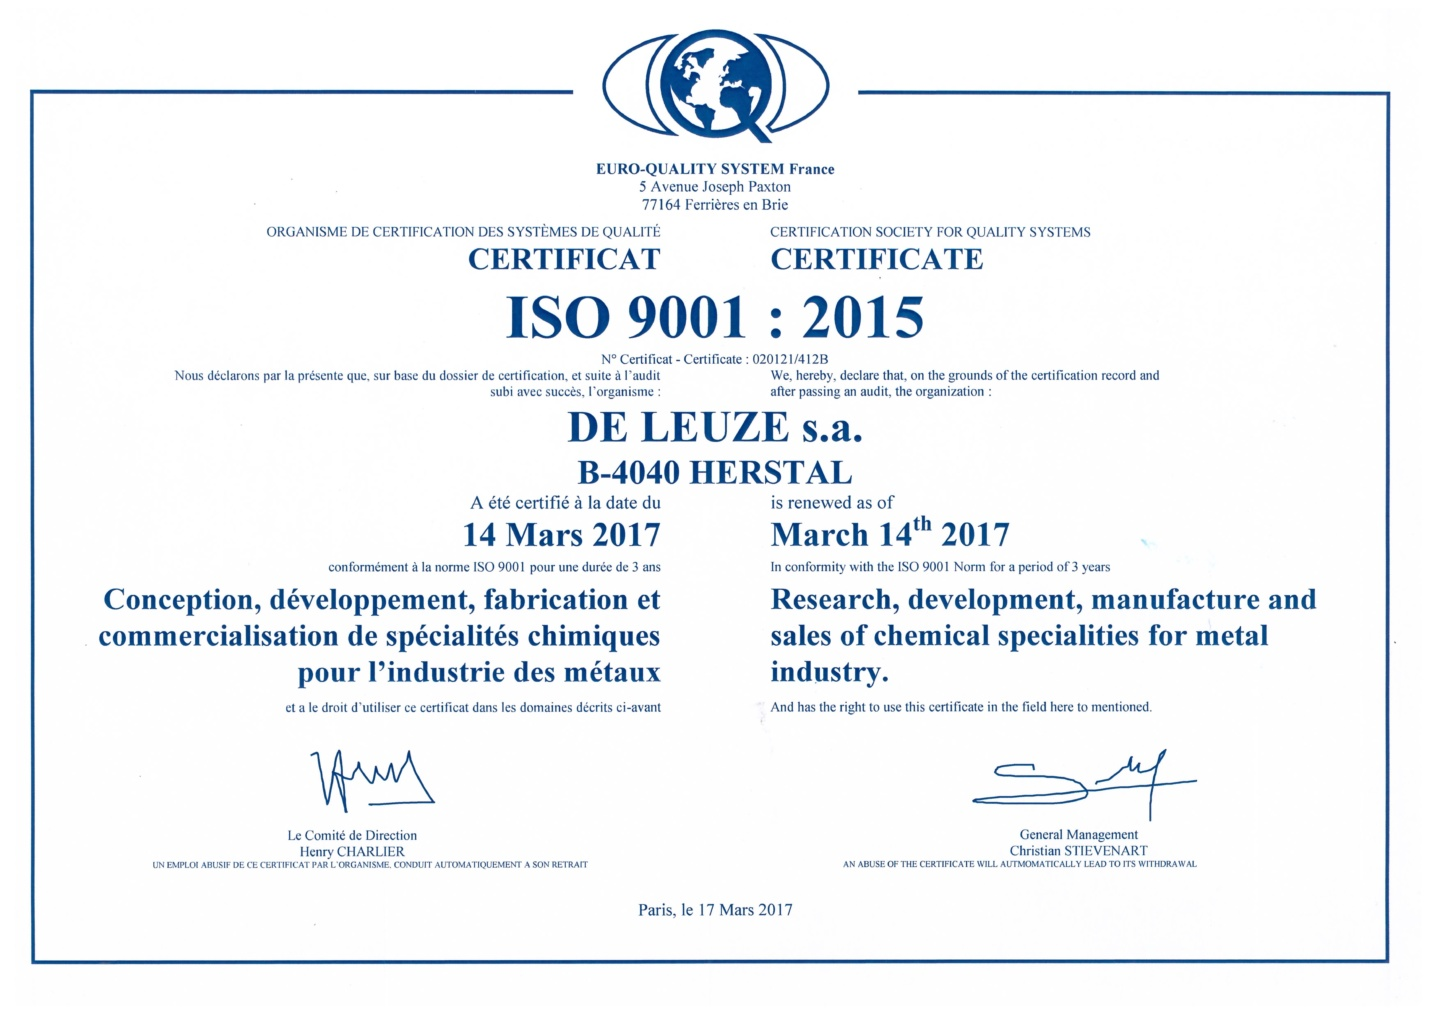 De Leuze Iso 9001 certification 2015